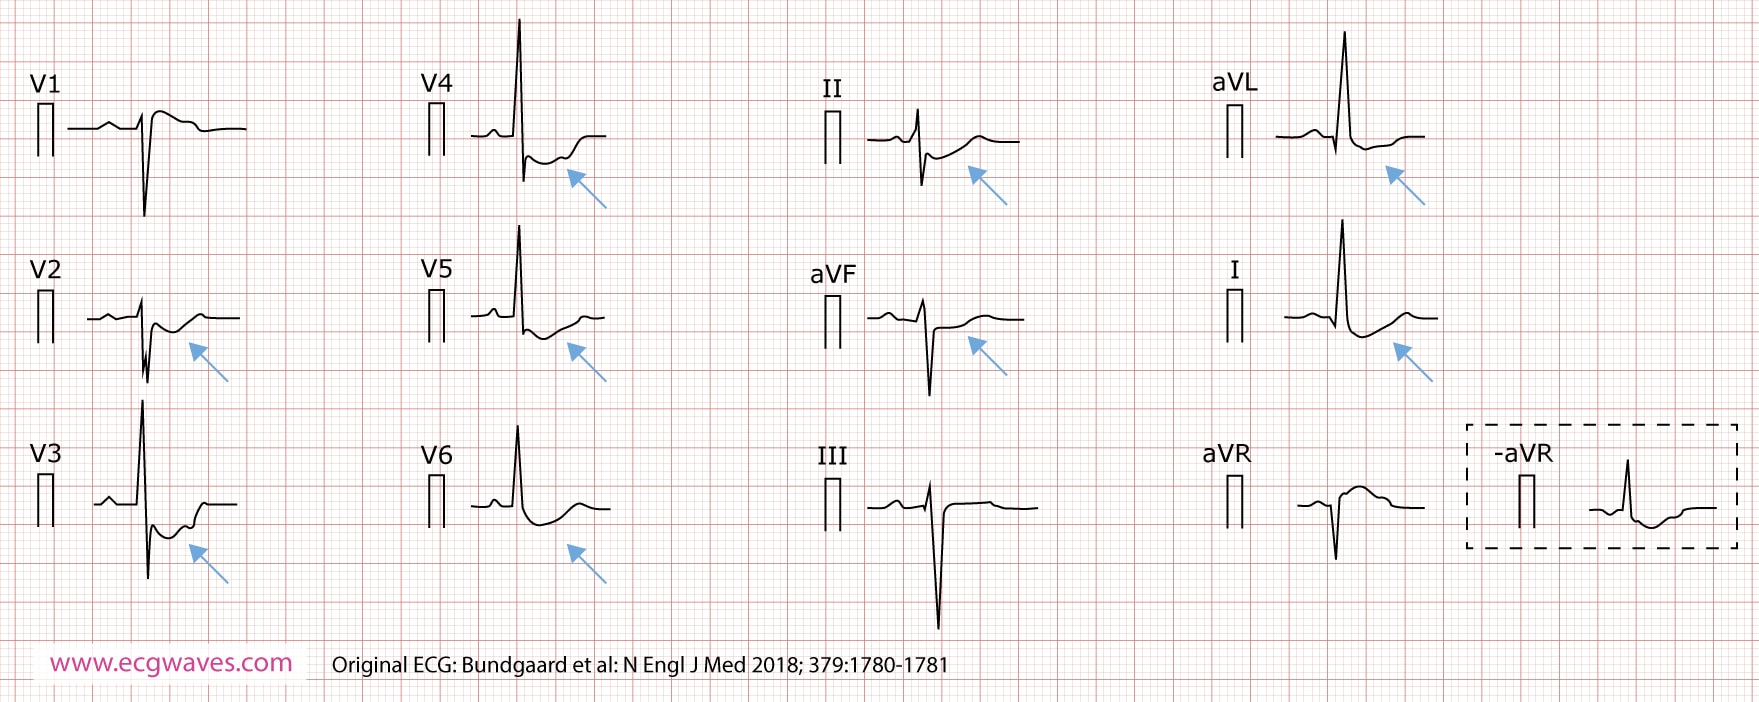 Figure 4. 12-lead ECG (presented according to Cabrera), recorded at 63 years of age, demonstrates concave-upward ST-segment depression in leads I, II, aVL, aVF, and V2 through V6; and ST-segment elevation in lead aVR (which corresponds to an identical ST-segment depression in the inverted lead -aVR). A notch is evident in the ascending part of the ST segment.